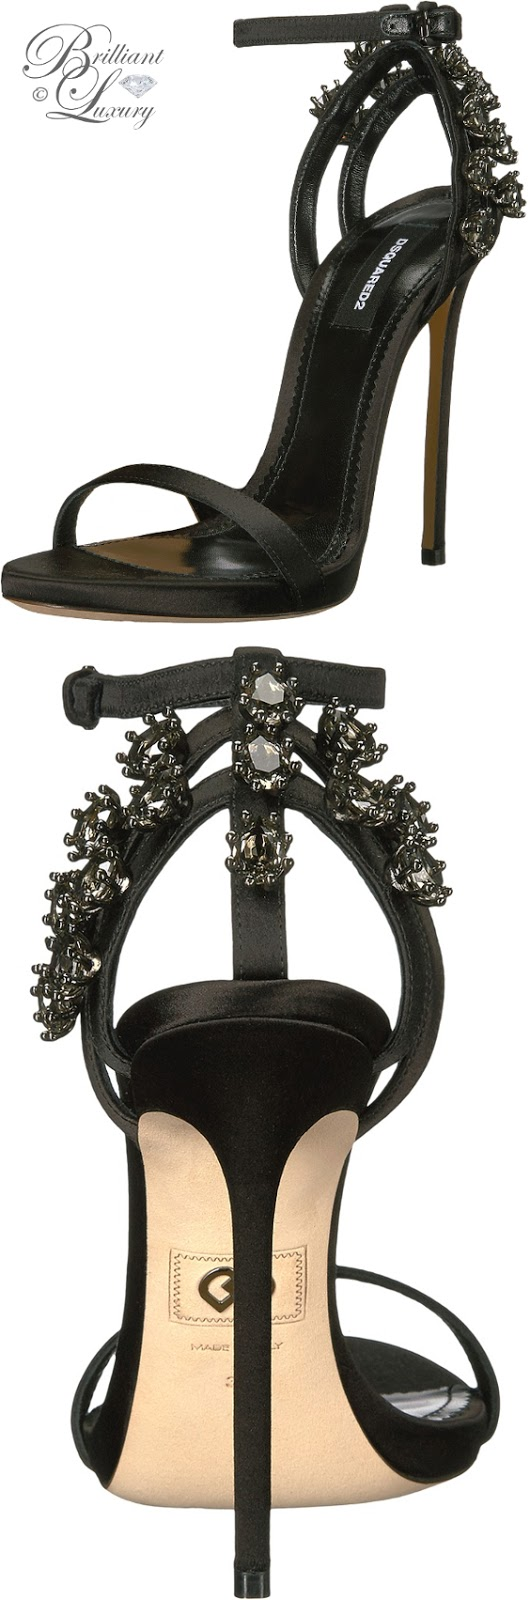 Brilliant Luxury ♦ Dsquared2 bejeweled high heel sandals